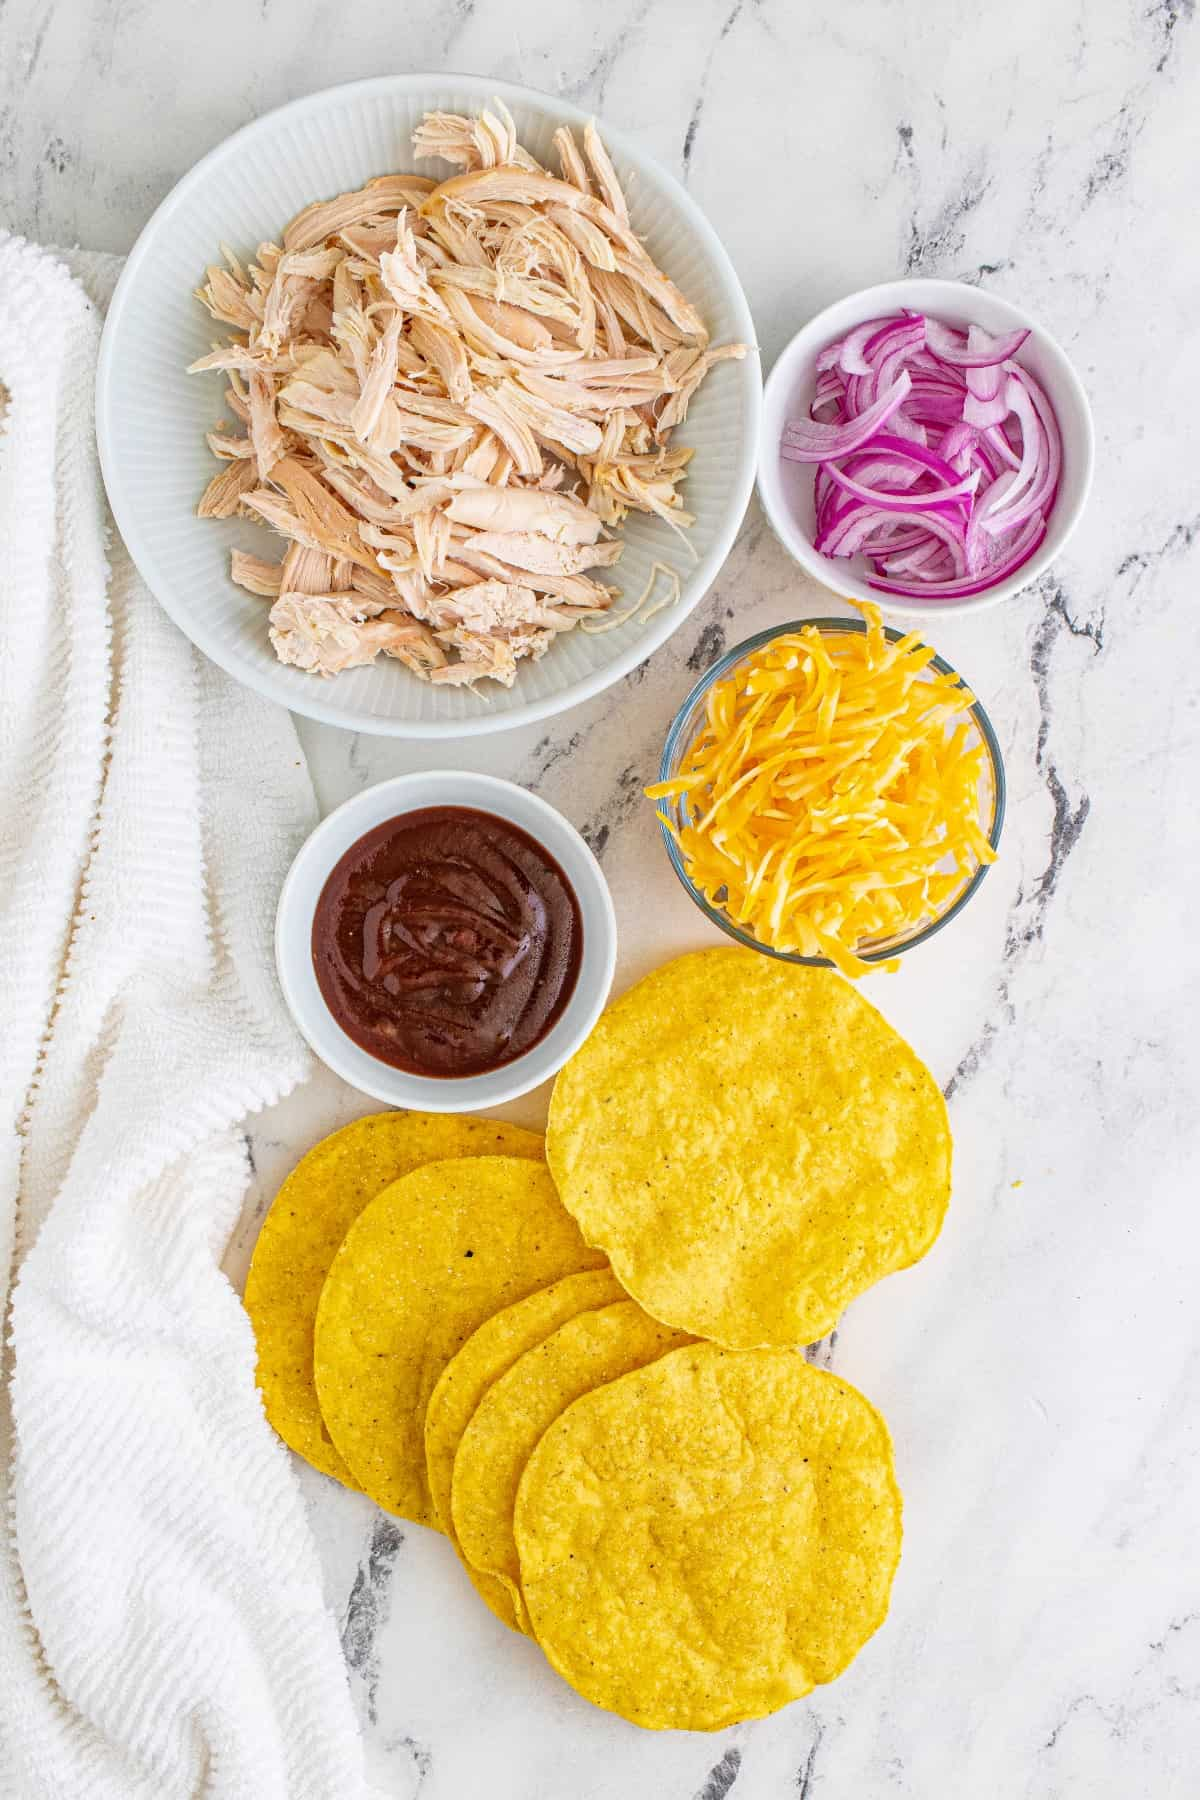 Ingredients for BBQ chicken tostadas in separate bowls on a marble surface.